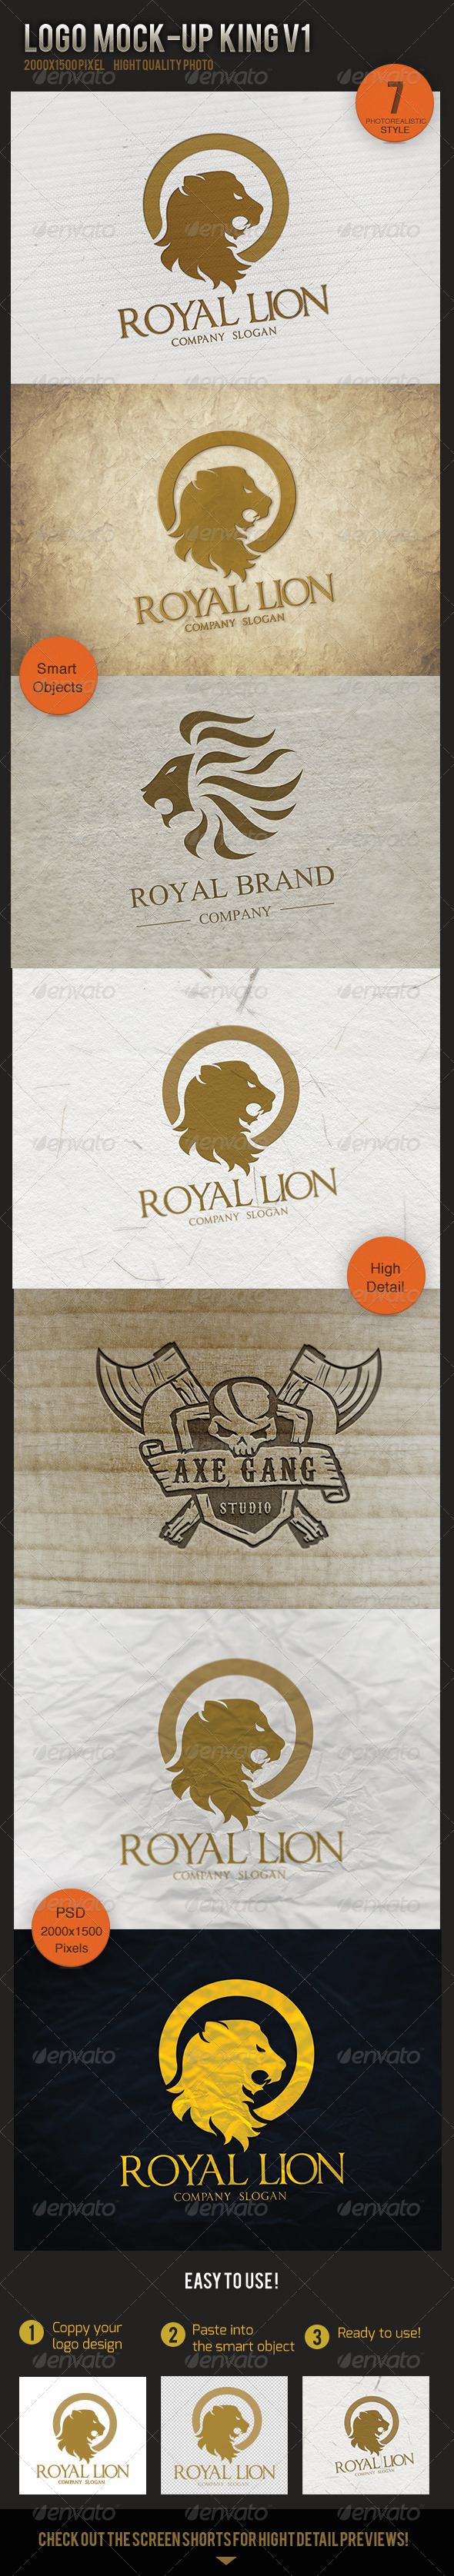 GraphicRiver Logo Mock-Up King V1 5603754